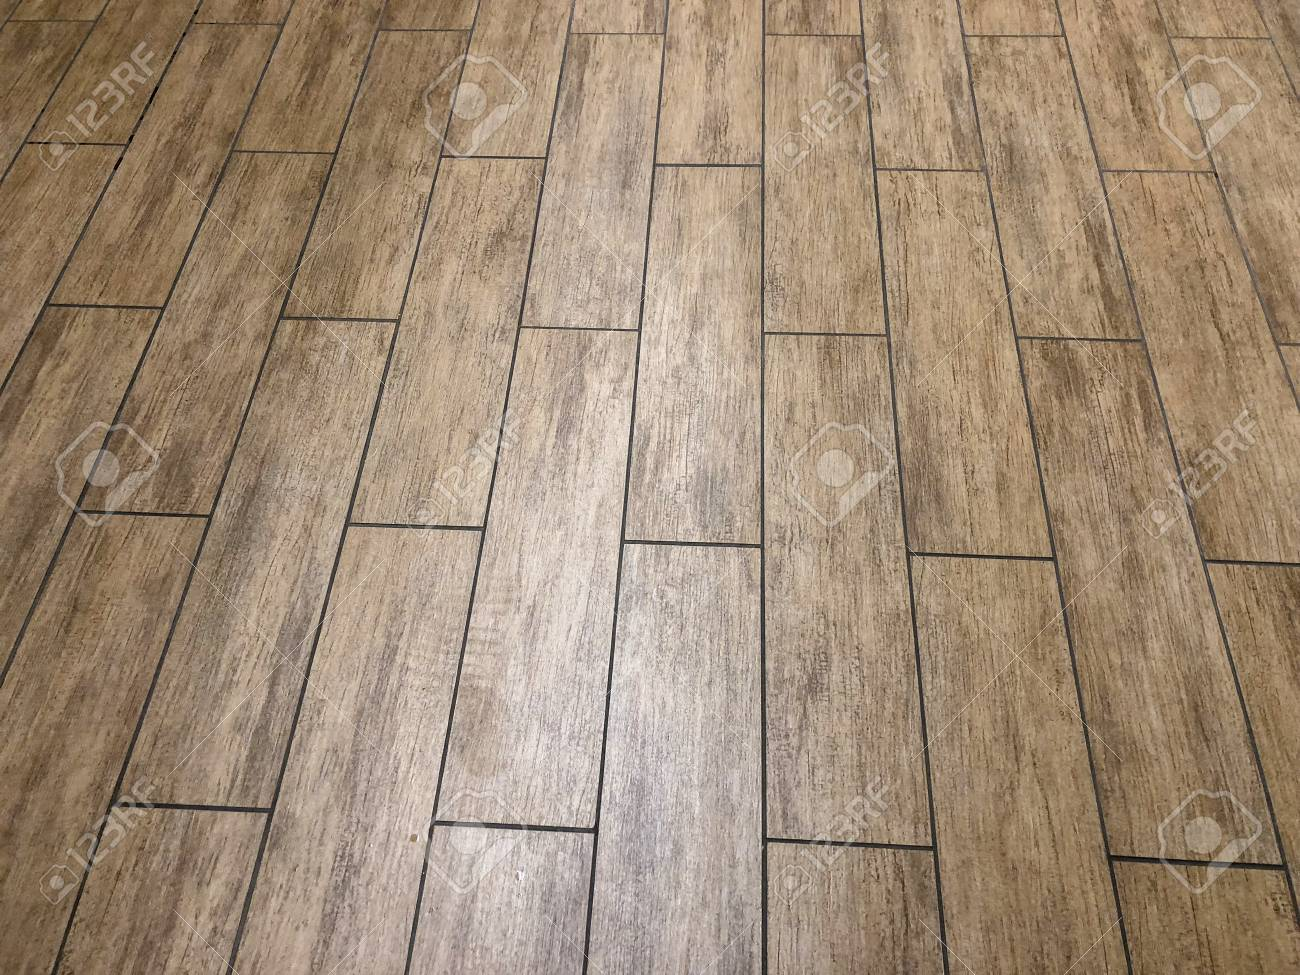 modern slate or ceramic long tiles installed in staggered pattern - 125499348